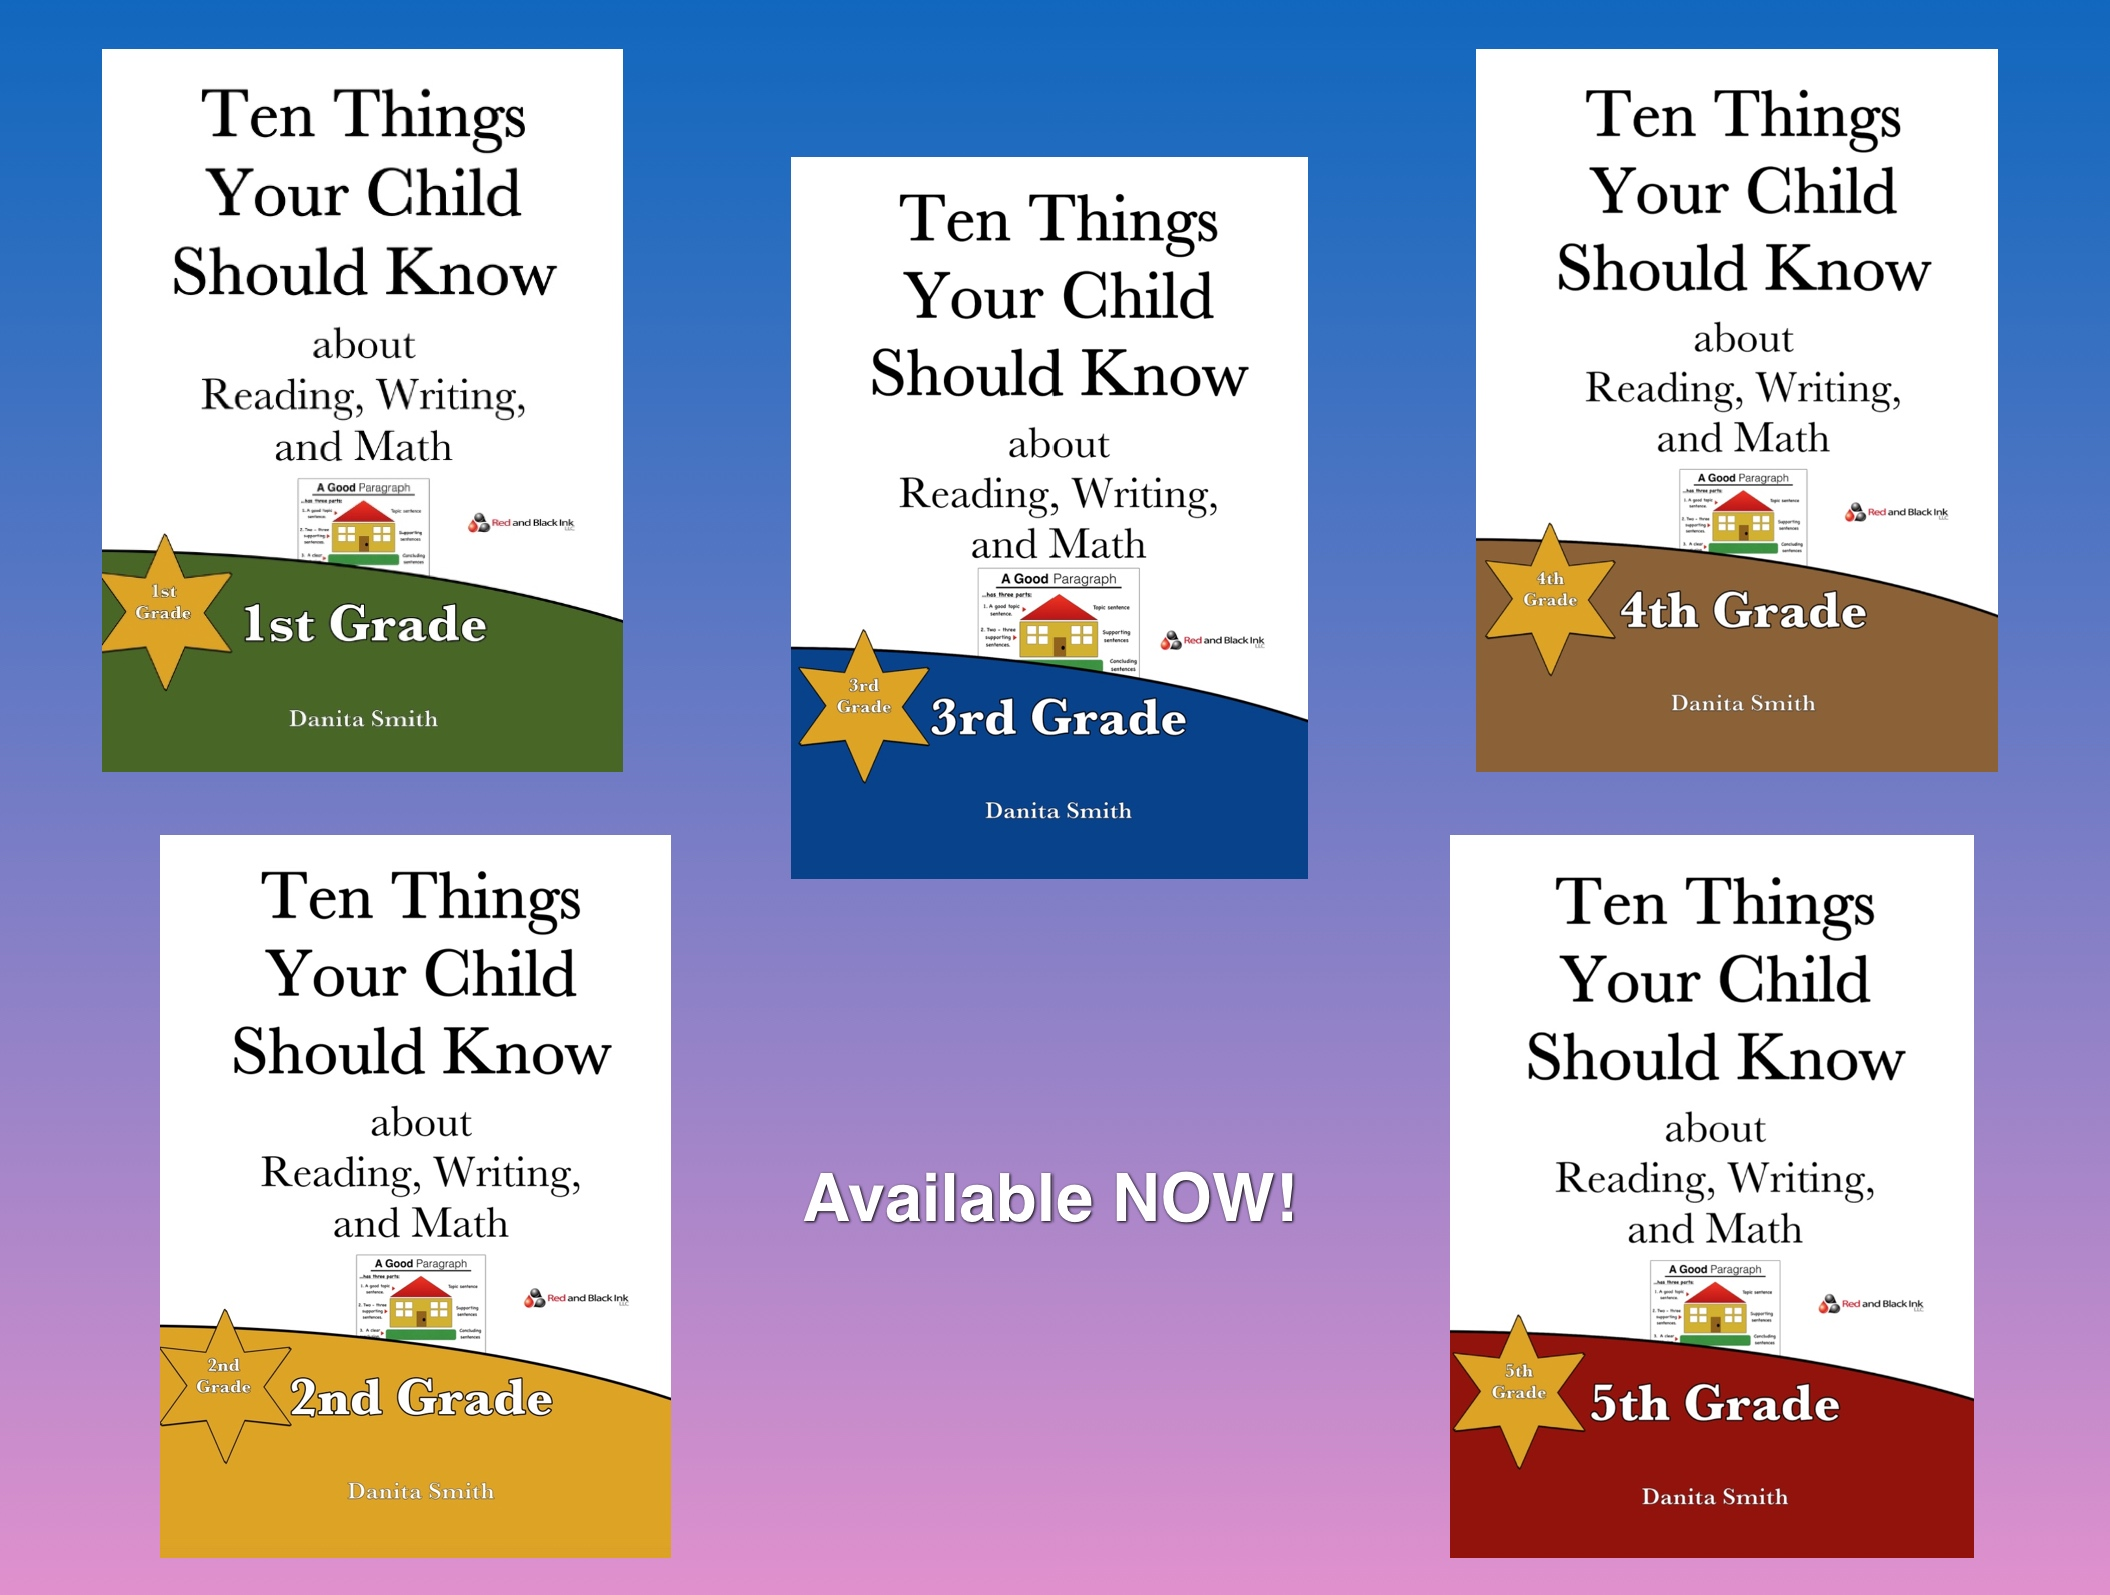 Ten Things Your Child Should Know about Reading, Writing and Math by Danita Smith